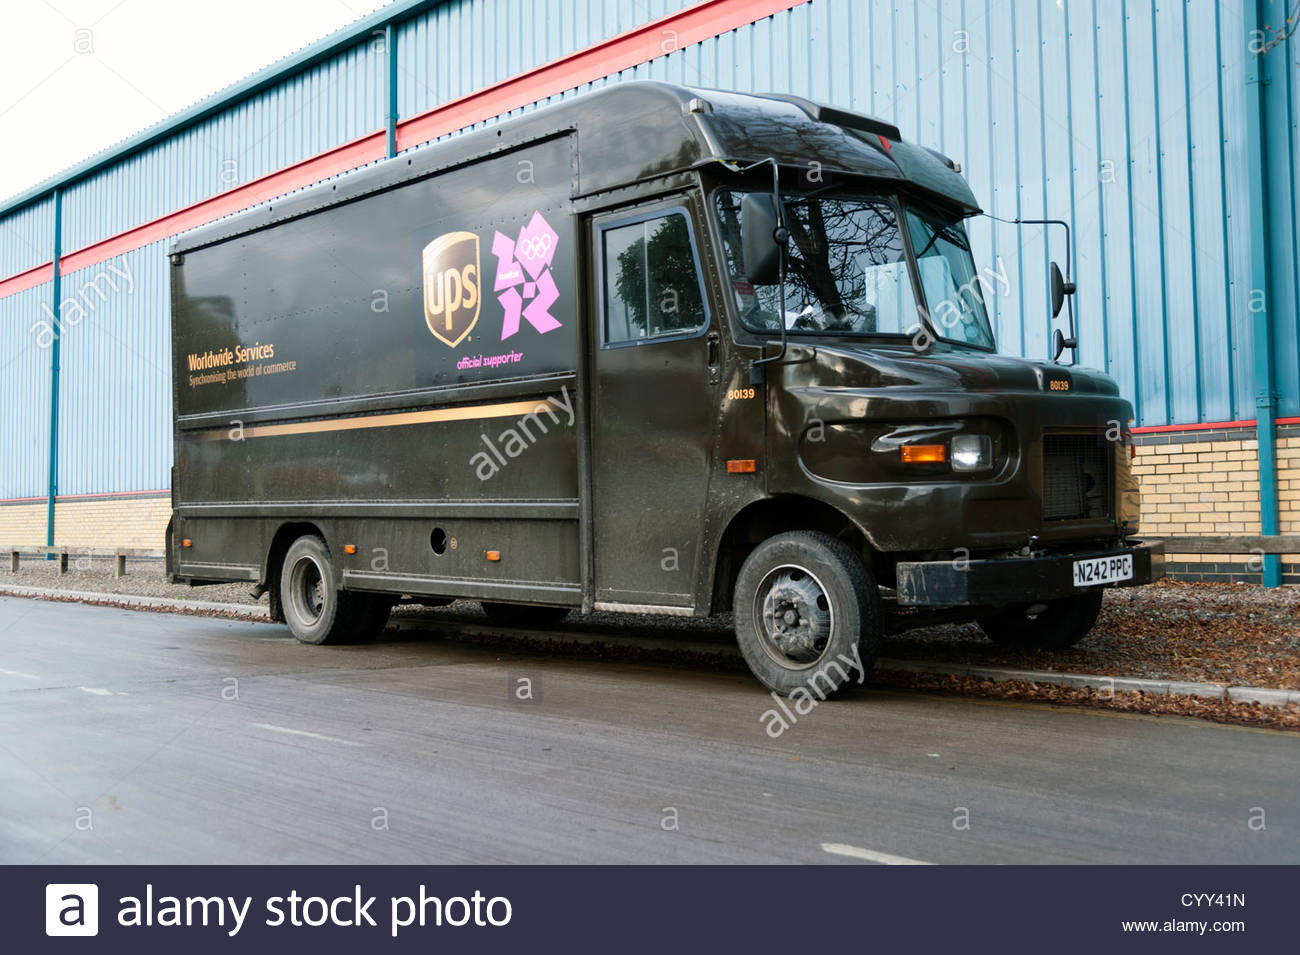 UPS delivery van in Hereford, UK. - Stock Image